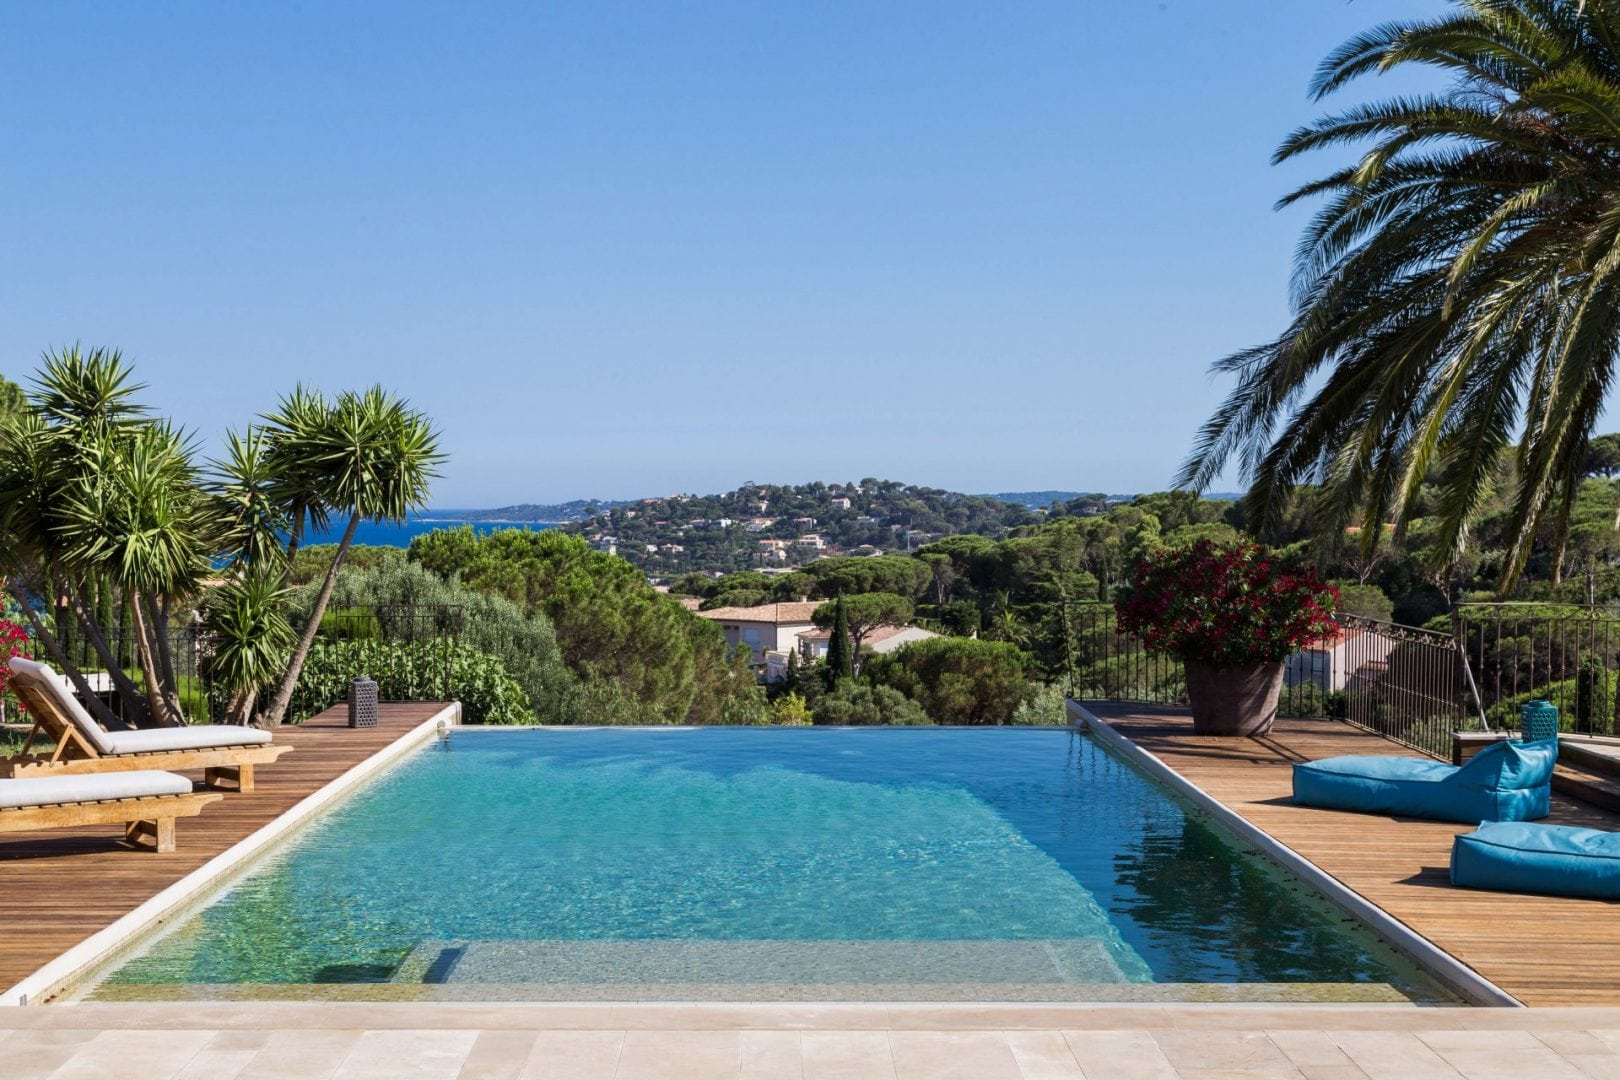 Luxury villa, sleeps 20, private pool with pool house, walking distance of St. Nartelle beach, child friendly